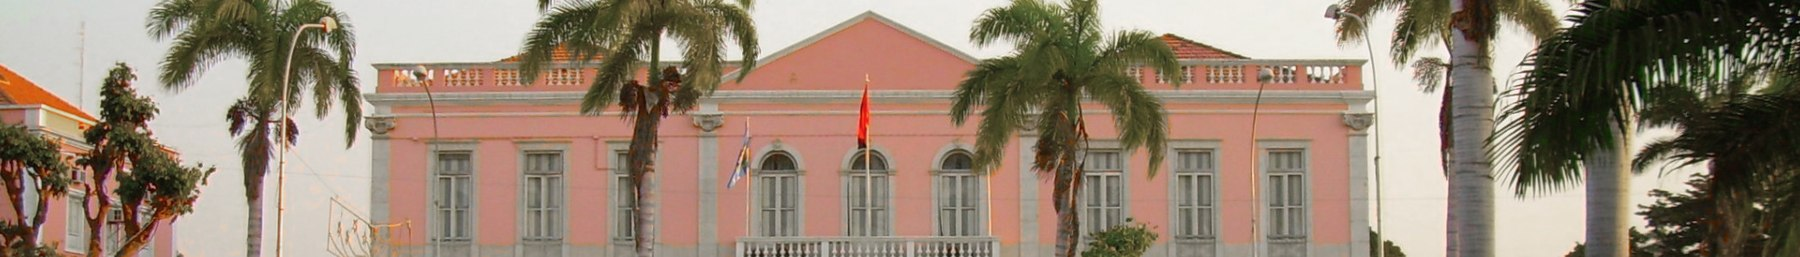 Benguela banner City Hall.jpg